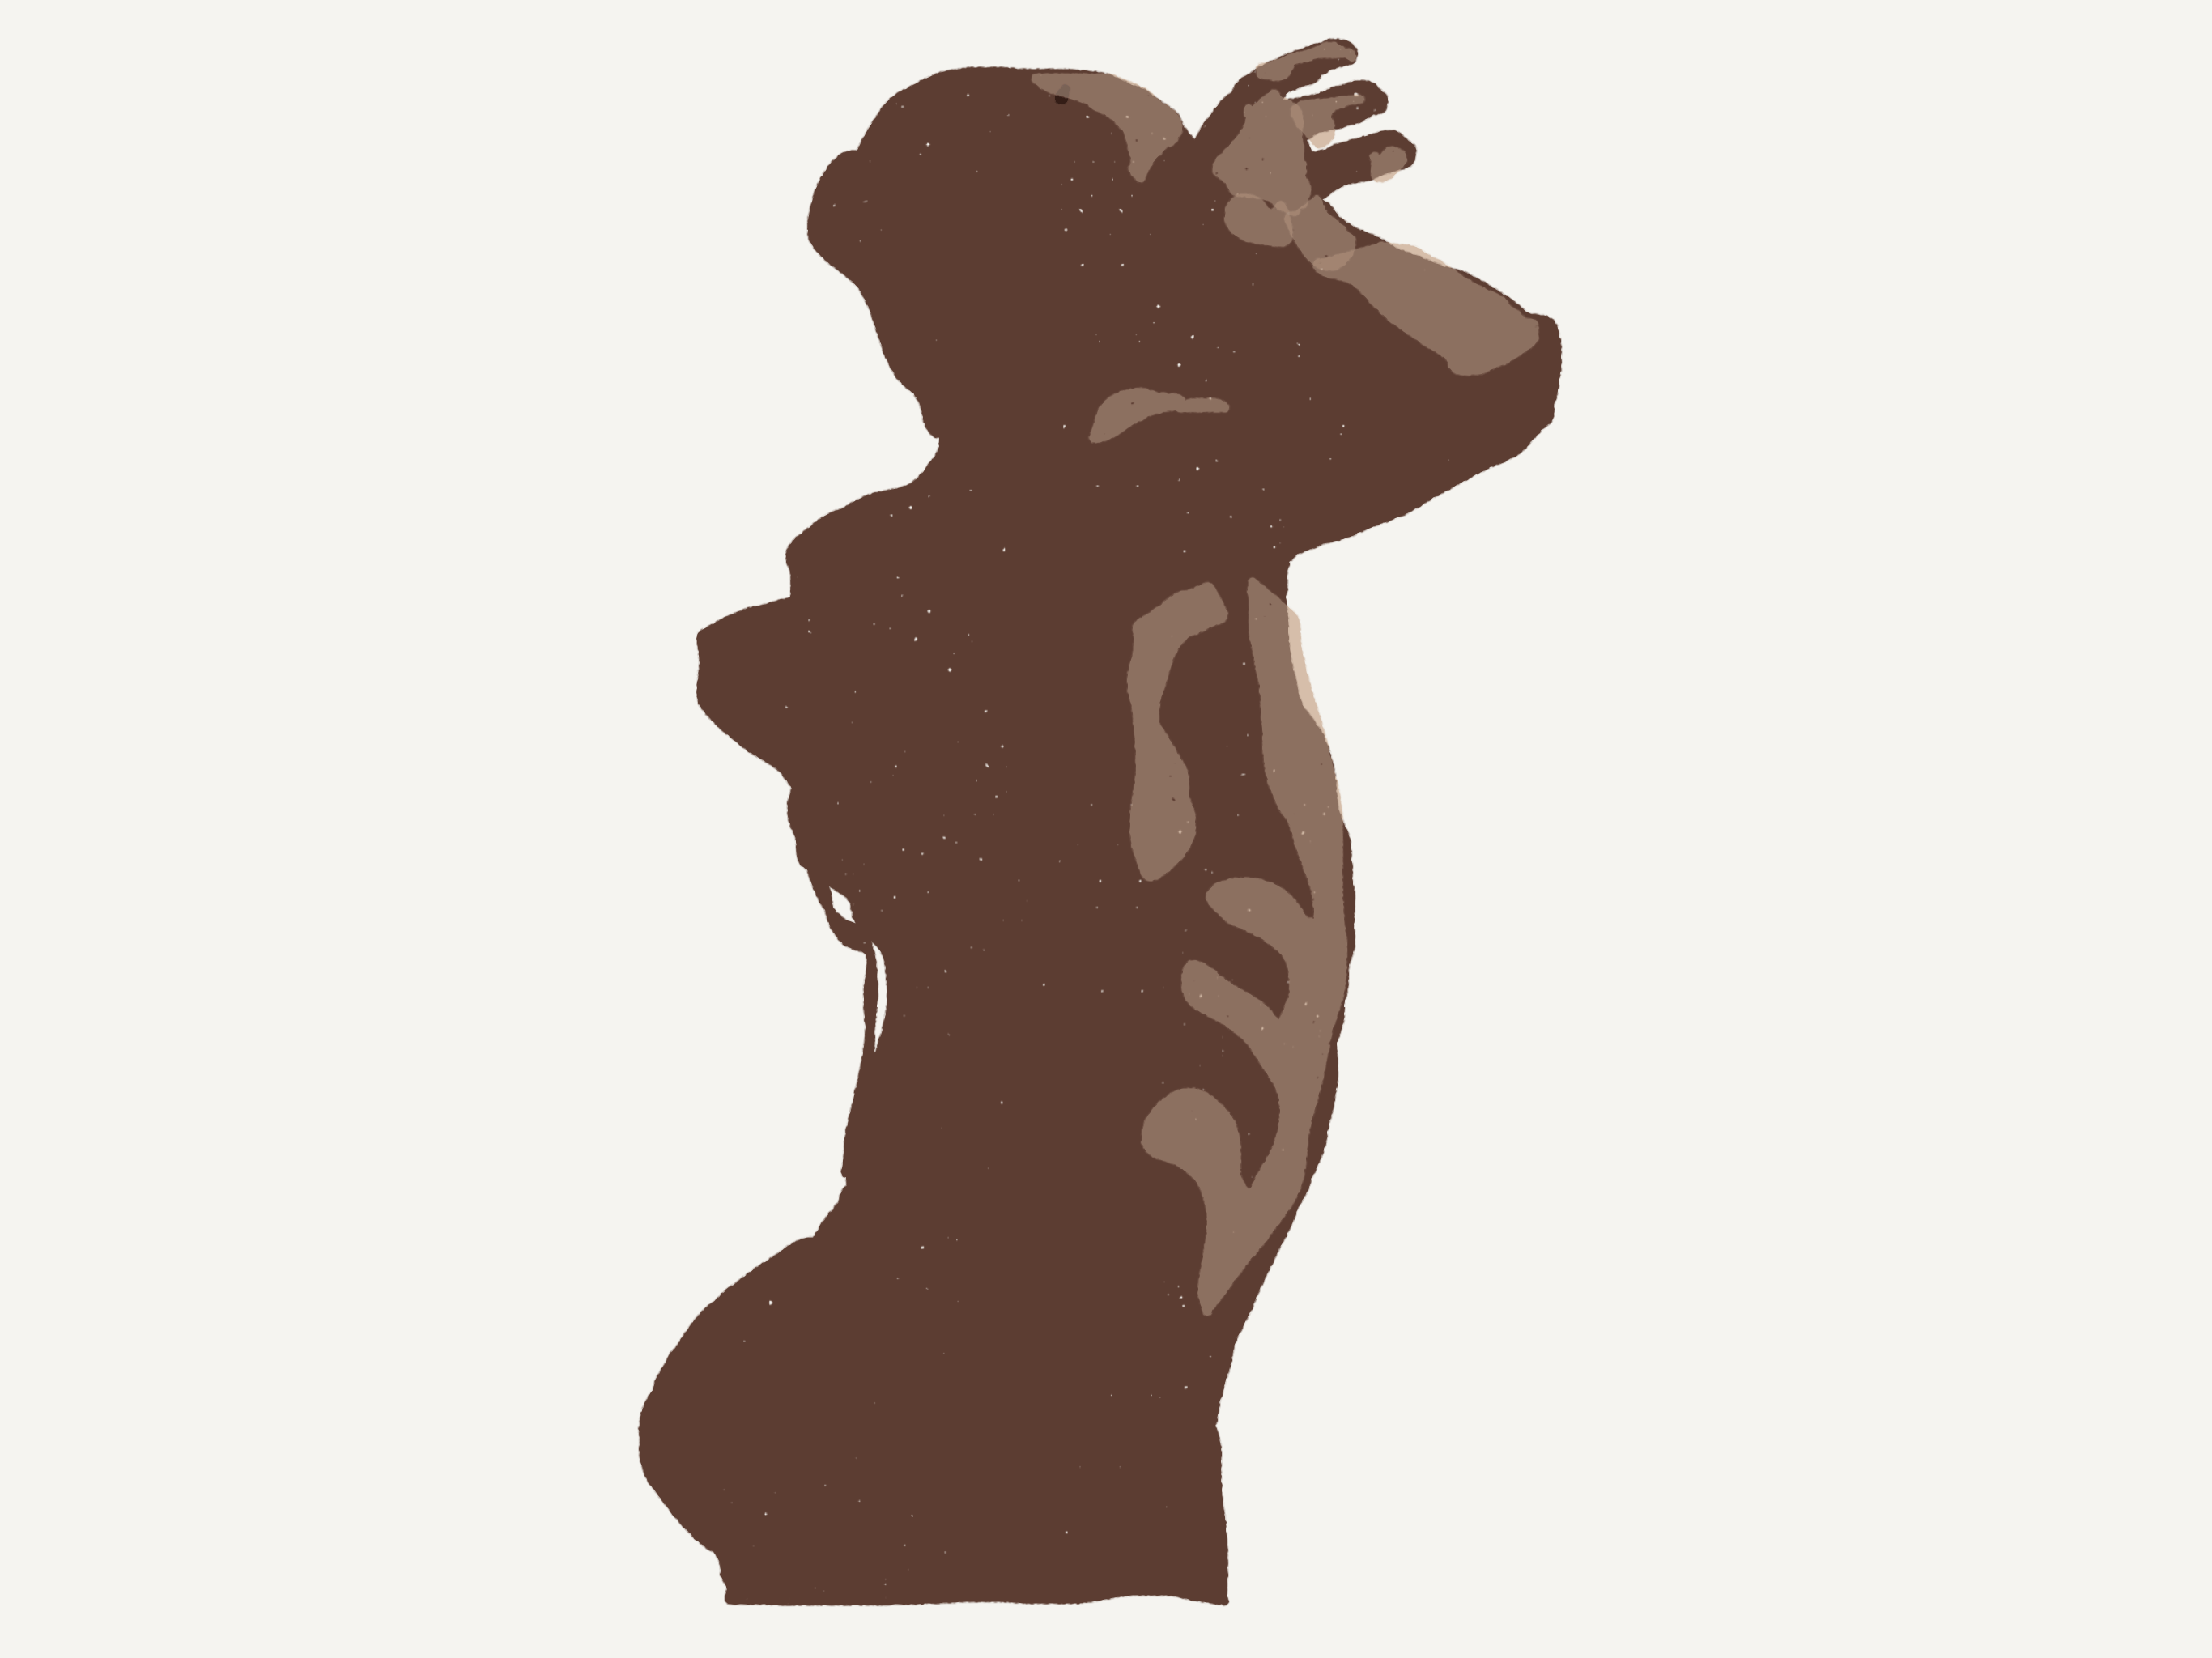 5 minute figure drawing group, Alex Feliciano